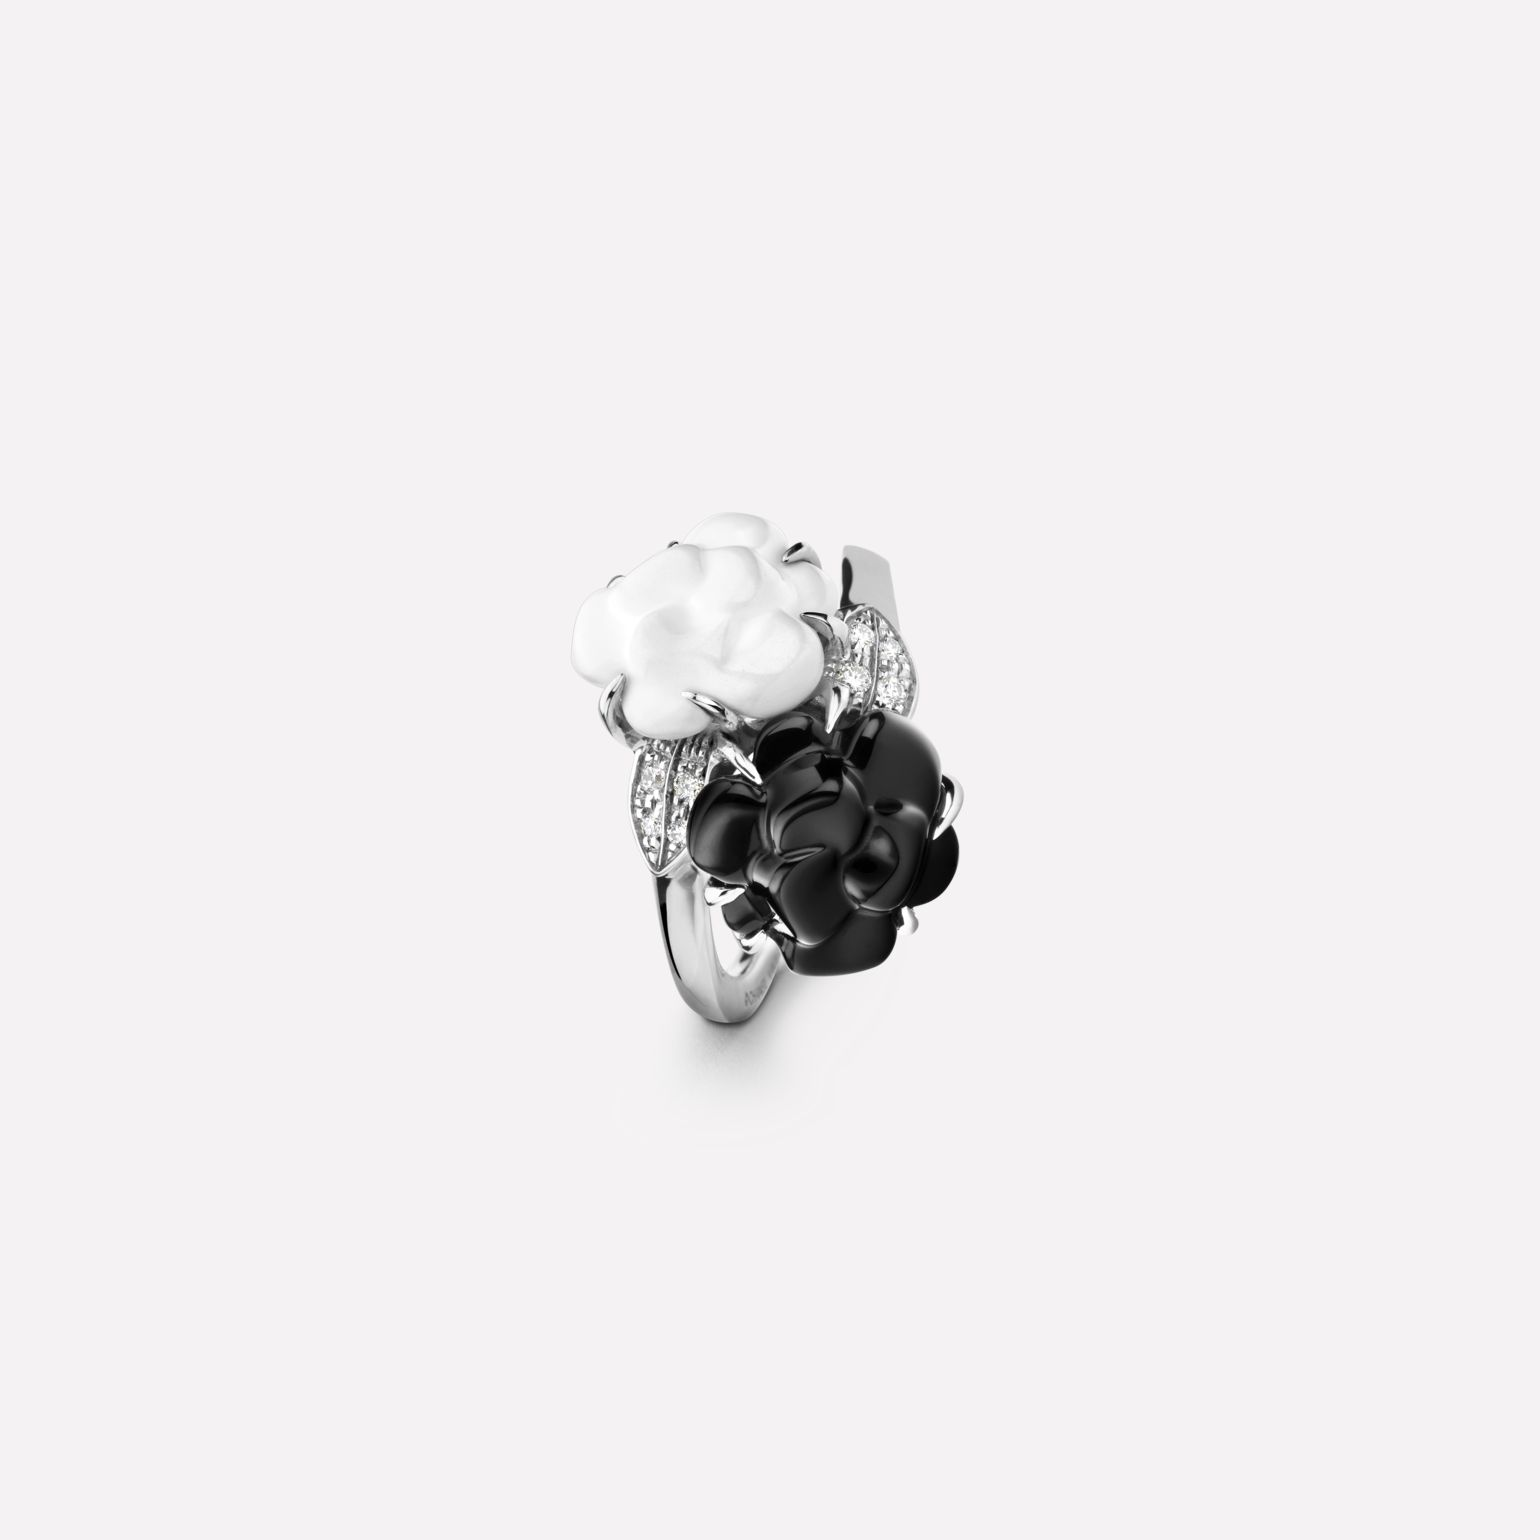 Camélia Ring Camélia Sculpté ring in black and white ceramic, 18K white gold and diamonds